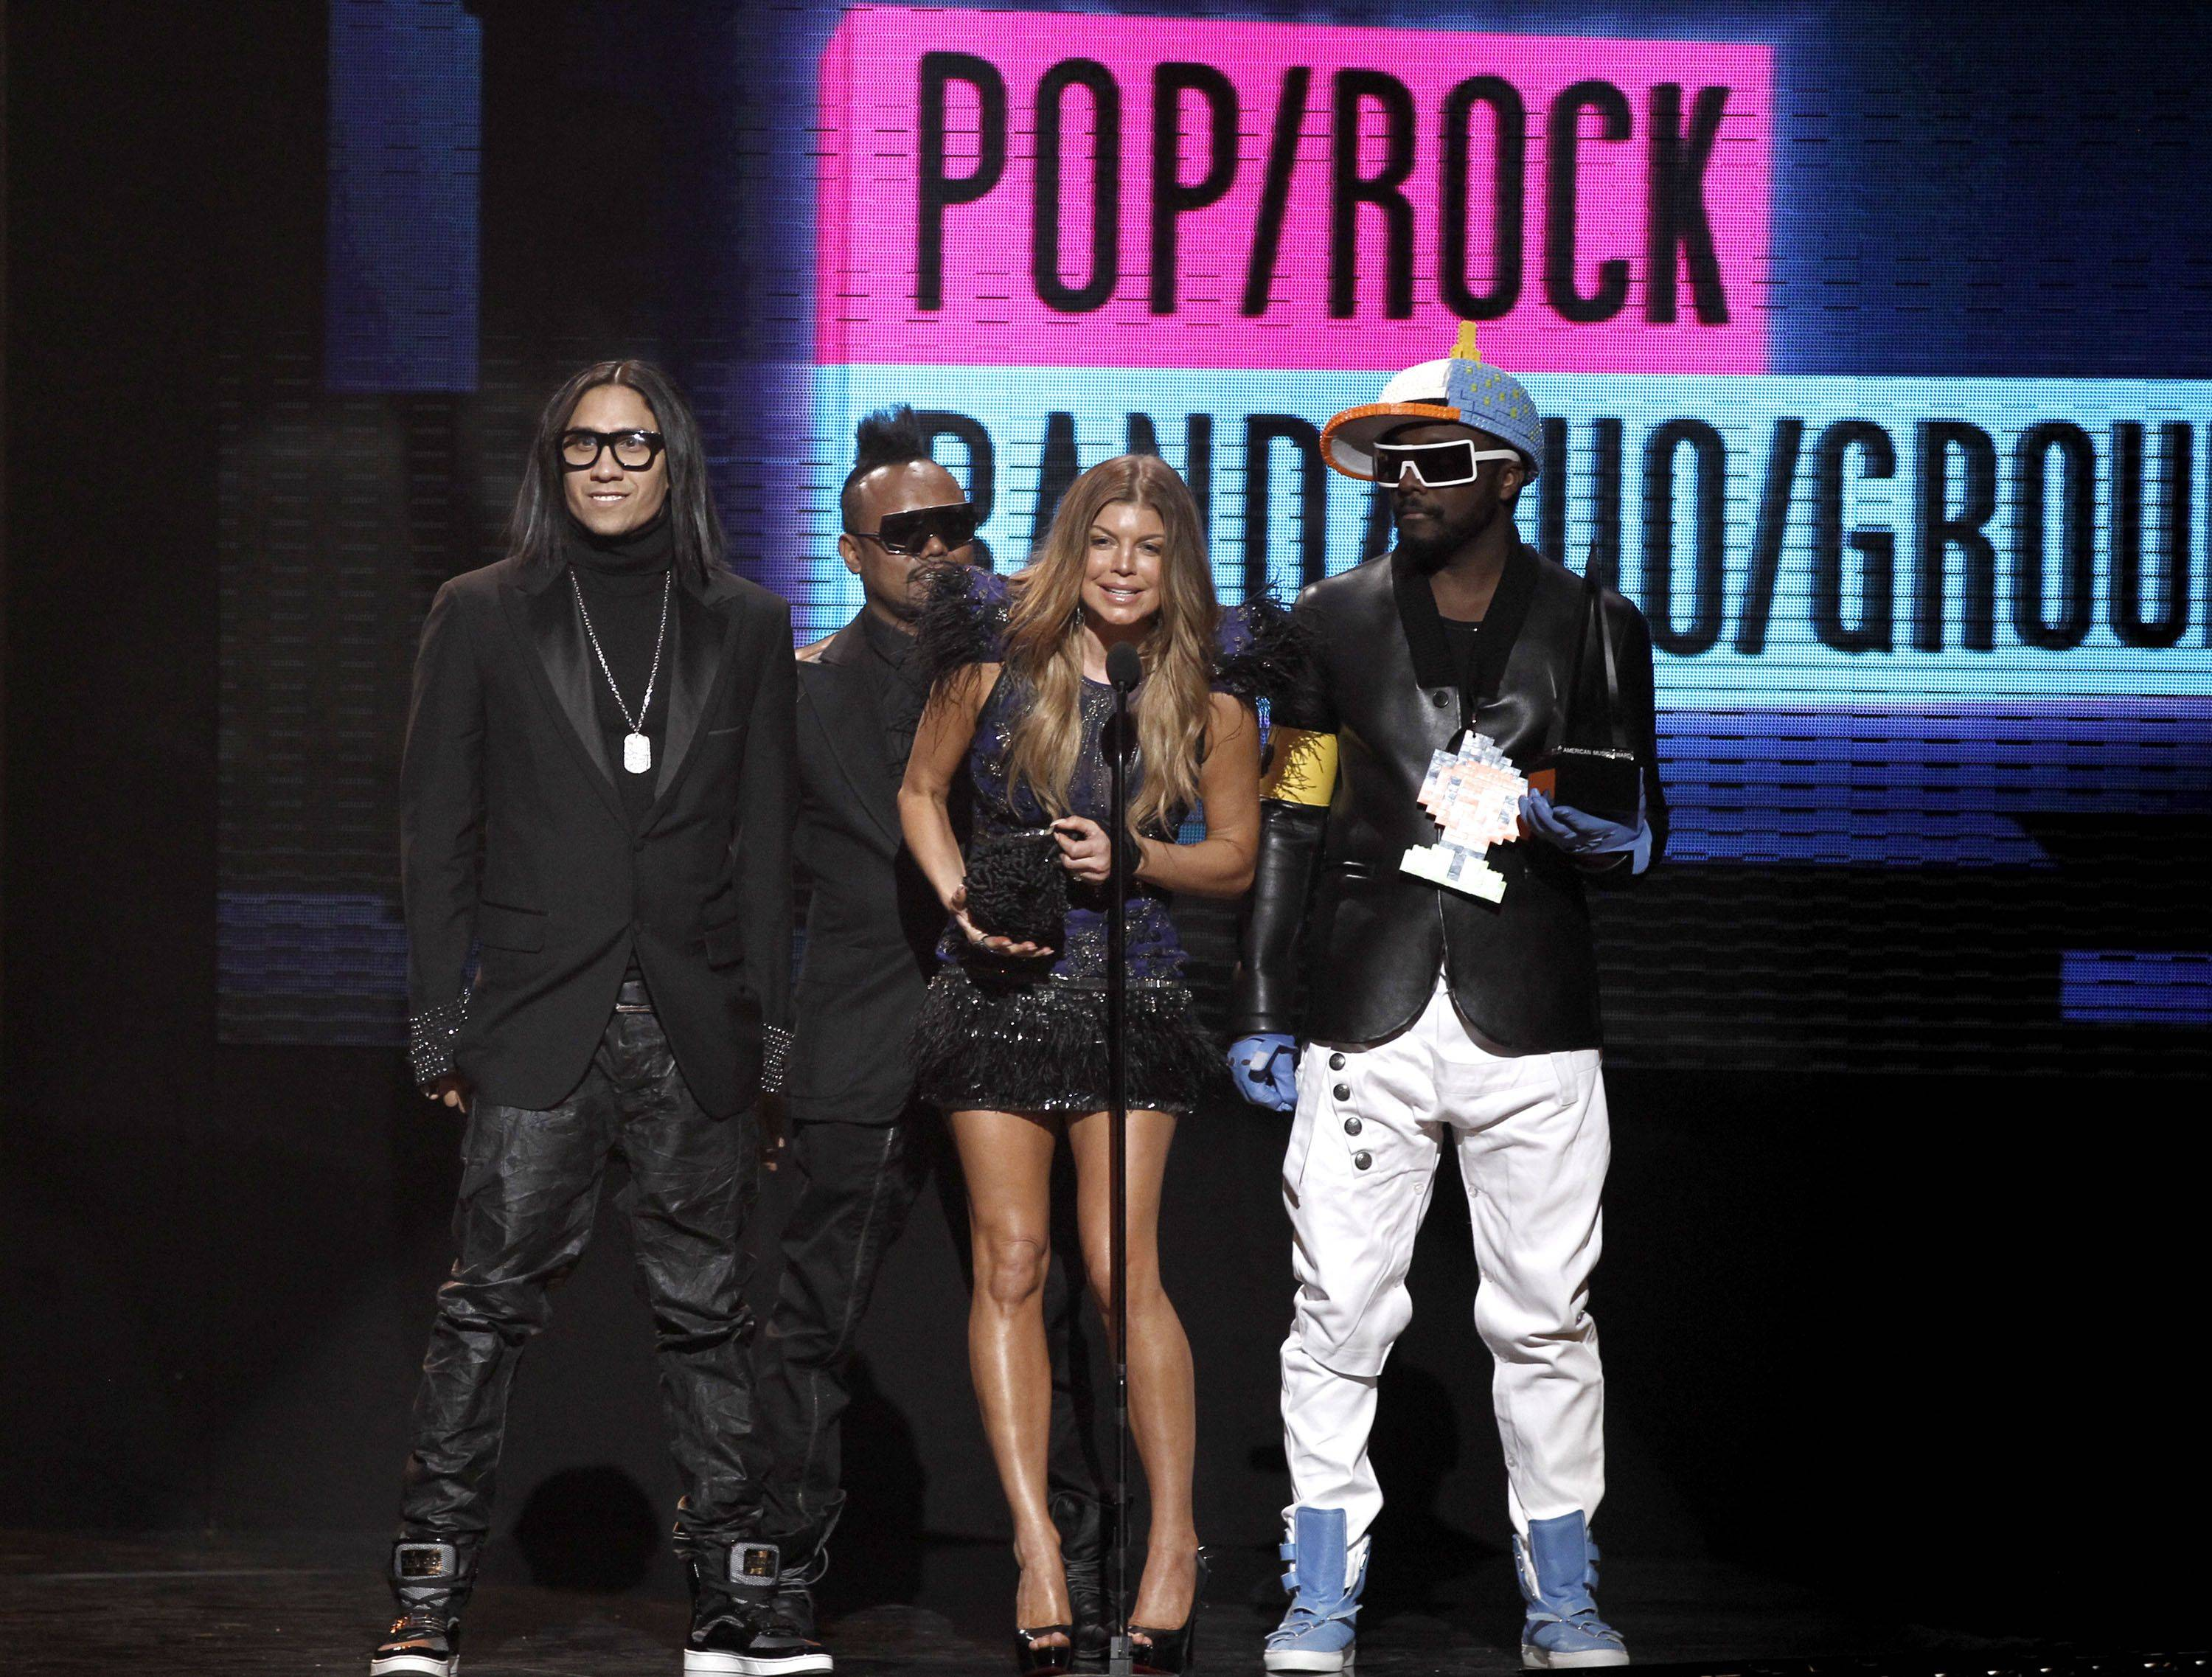 The Black Eyed Peas accept the favorite band, duo or group award at the 38th Annual American Music Awards. From left are, Taboo, Apl.de.ap, Fergie and Will.i.am.